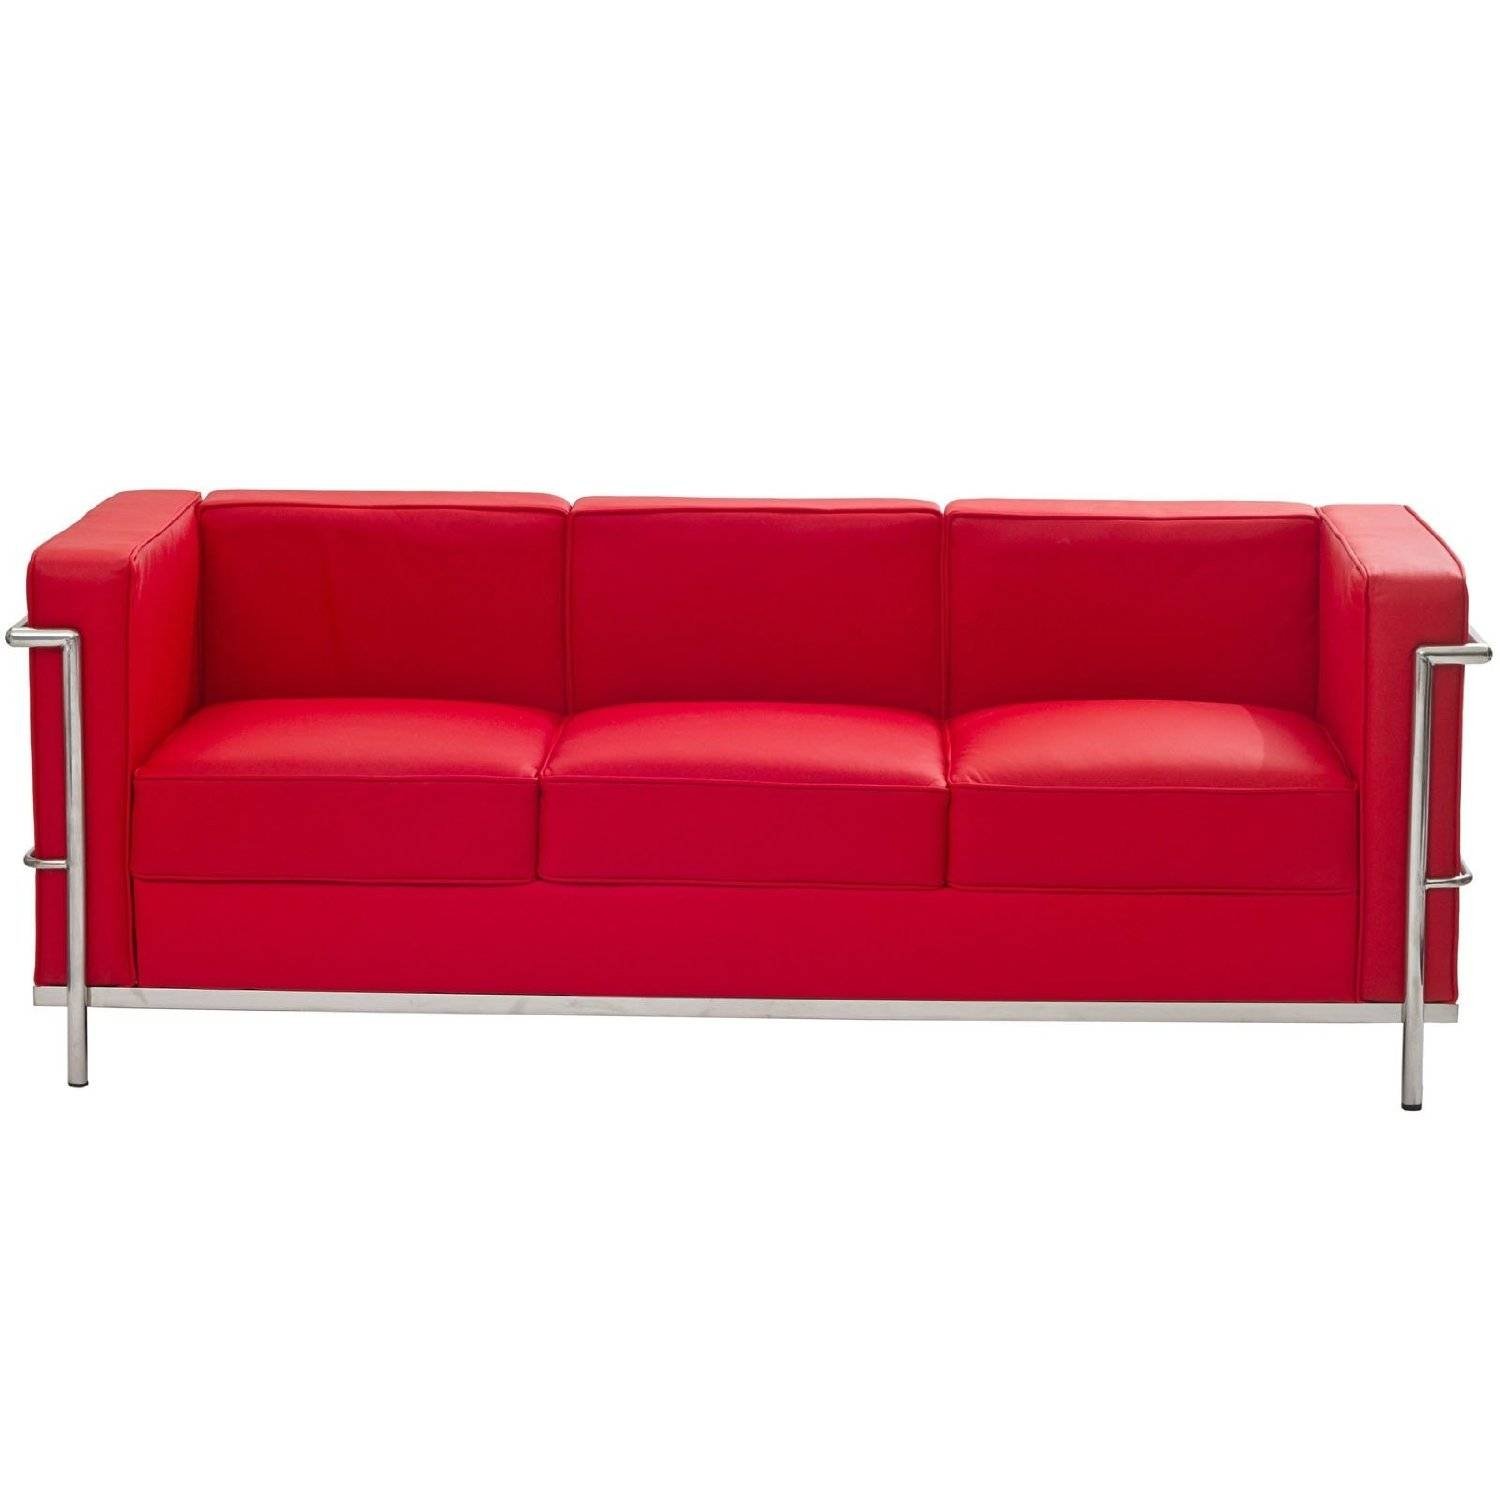 Sofa Pictures | Sofa for Red Sofa Chairs (Image 27 of 30)